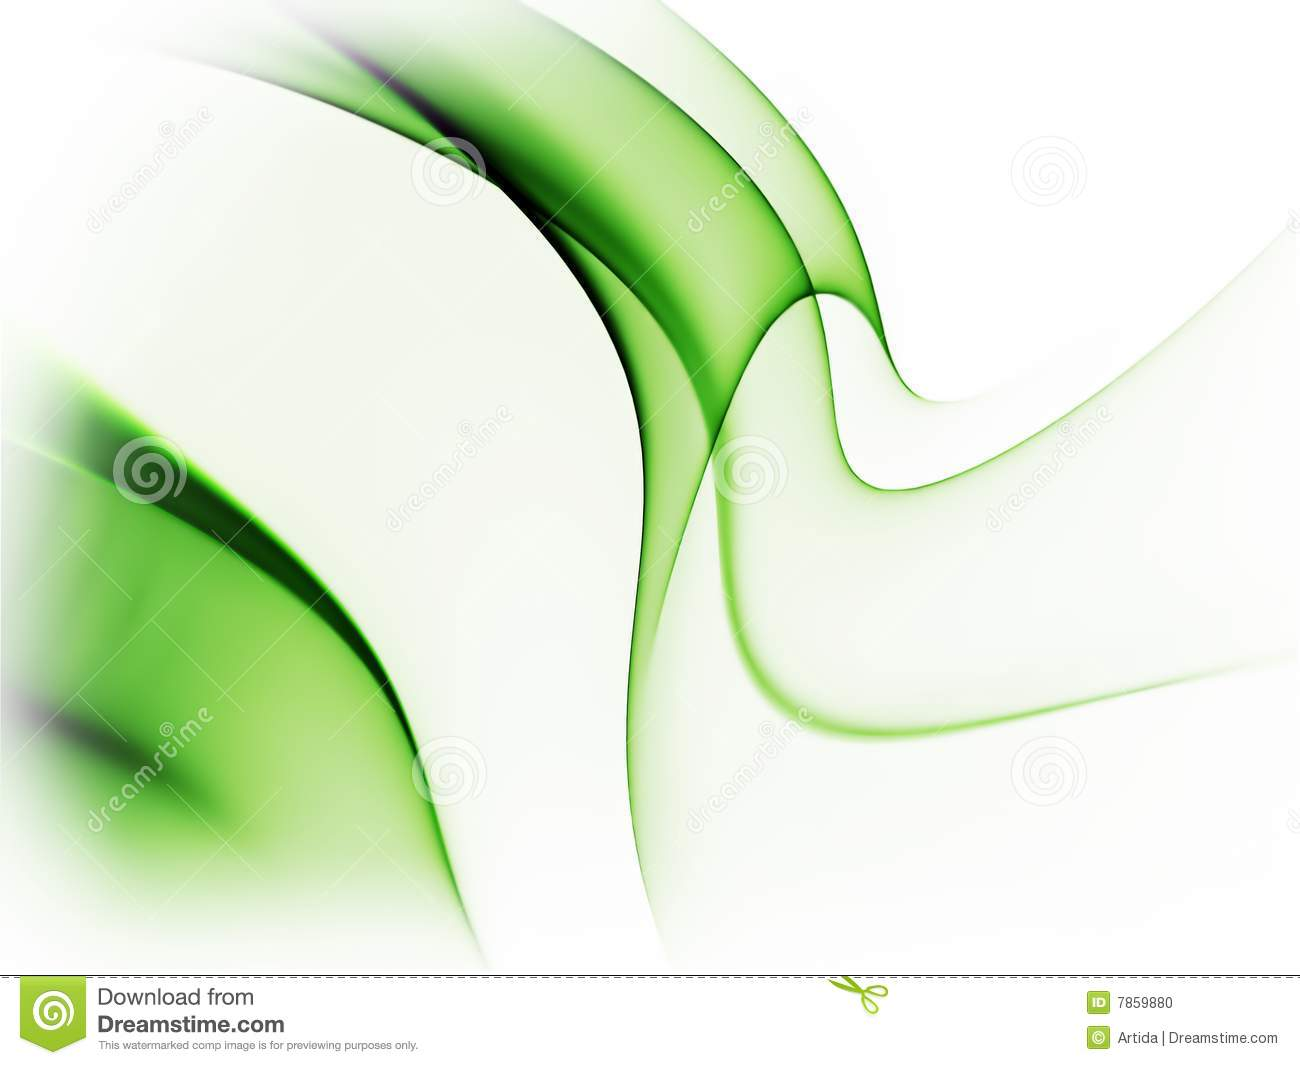 Fondo Blanco Con Verde: Dynamic Green Abstract Background On White Stock